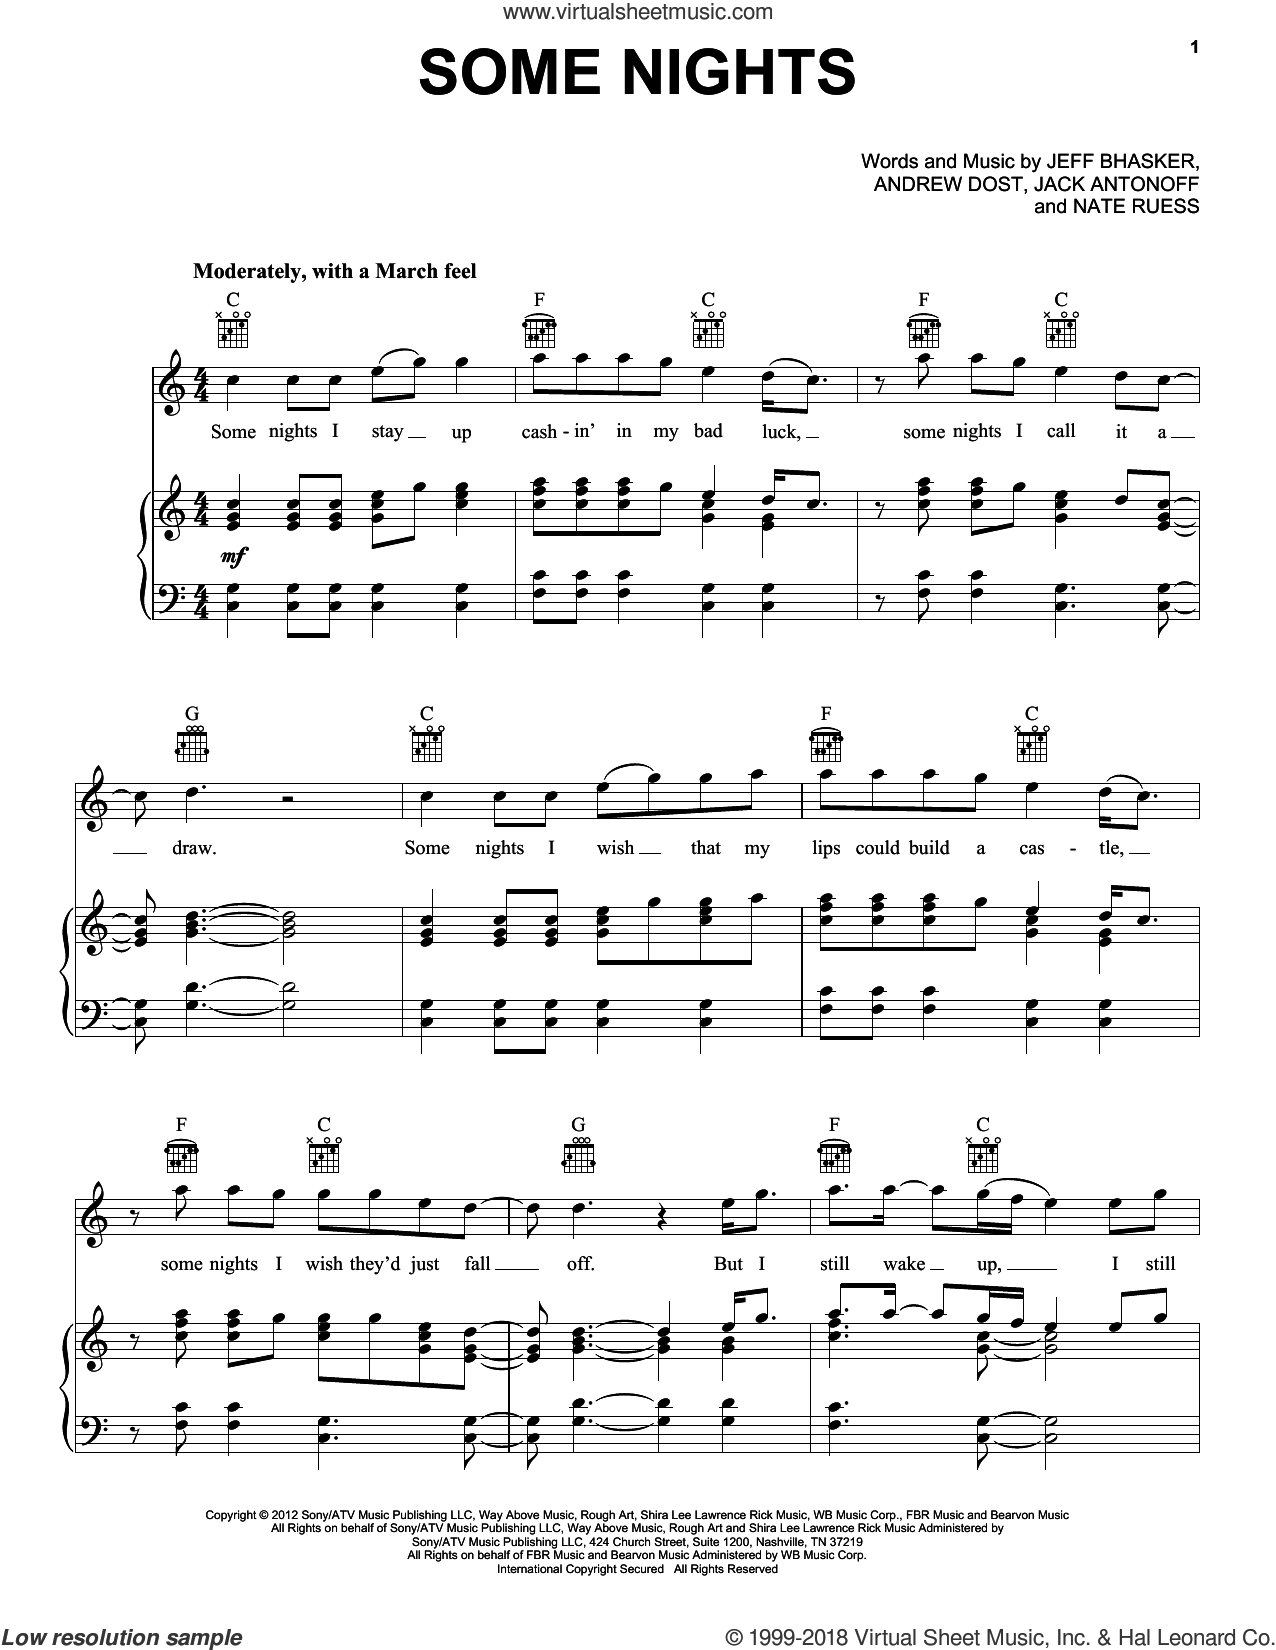 Some Nights sheet music for voice, piano or guitar by Fun, Andrew Dost, Jack Antonoff, Jeff Bhasker and Nathaniel Ruess, intermediate